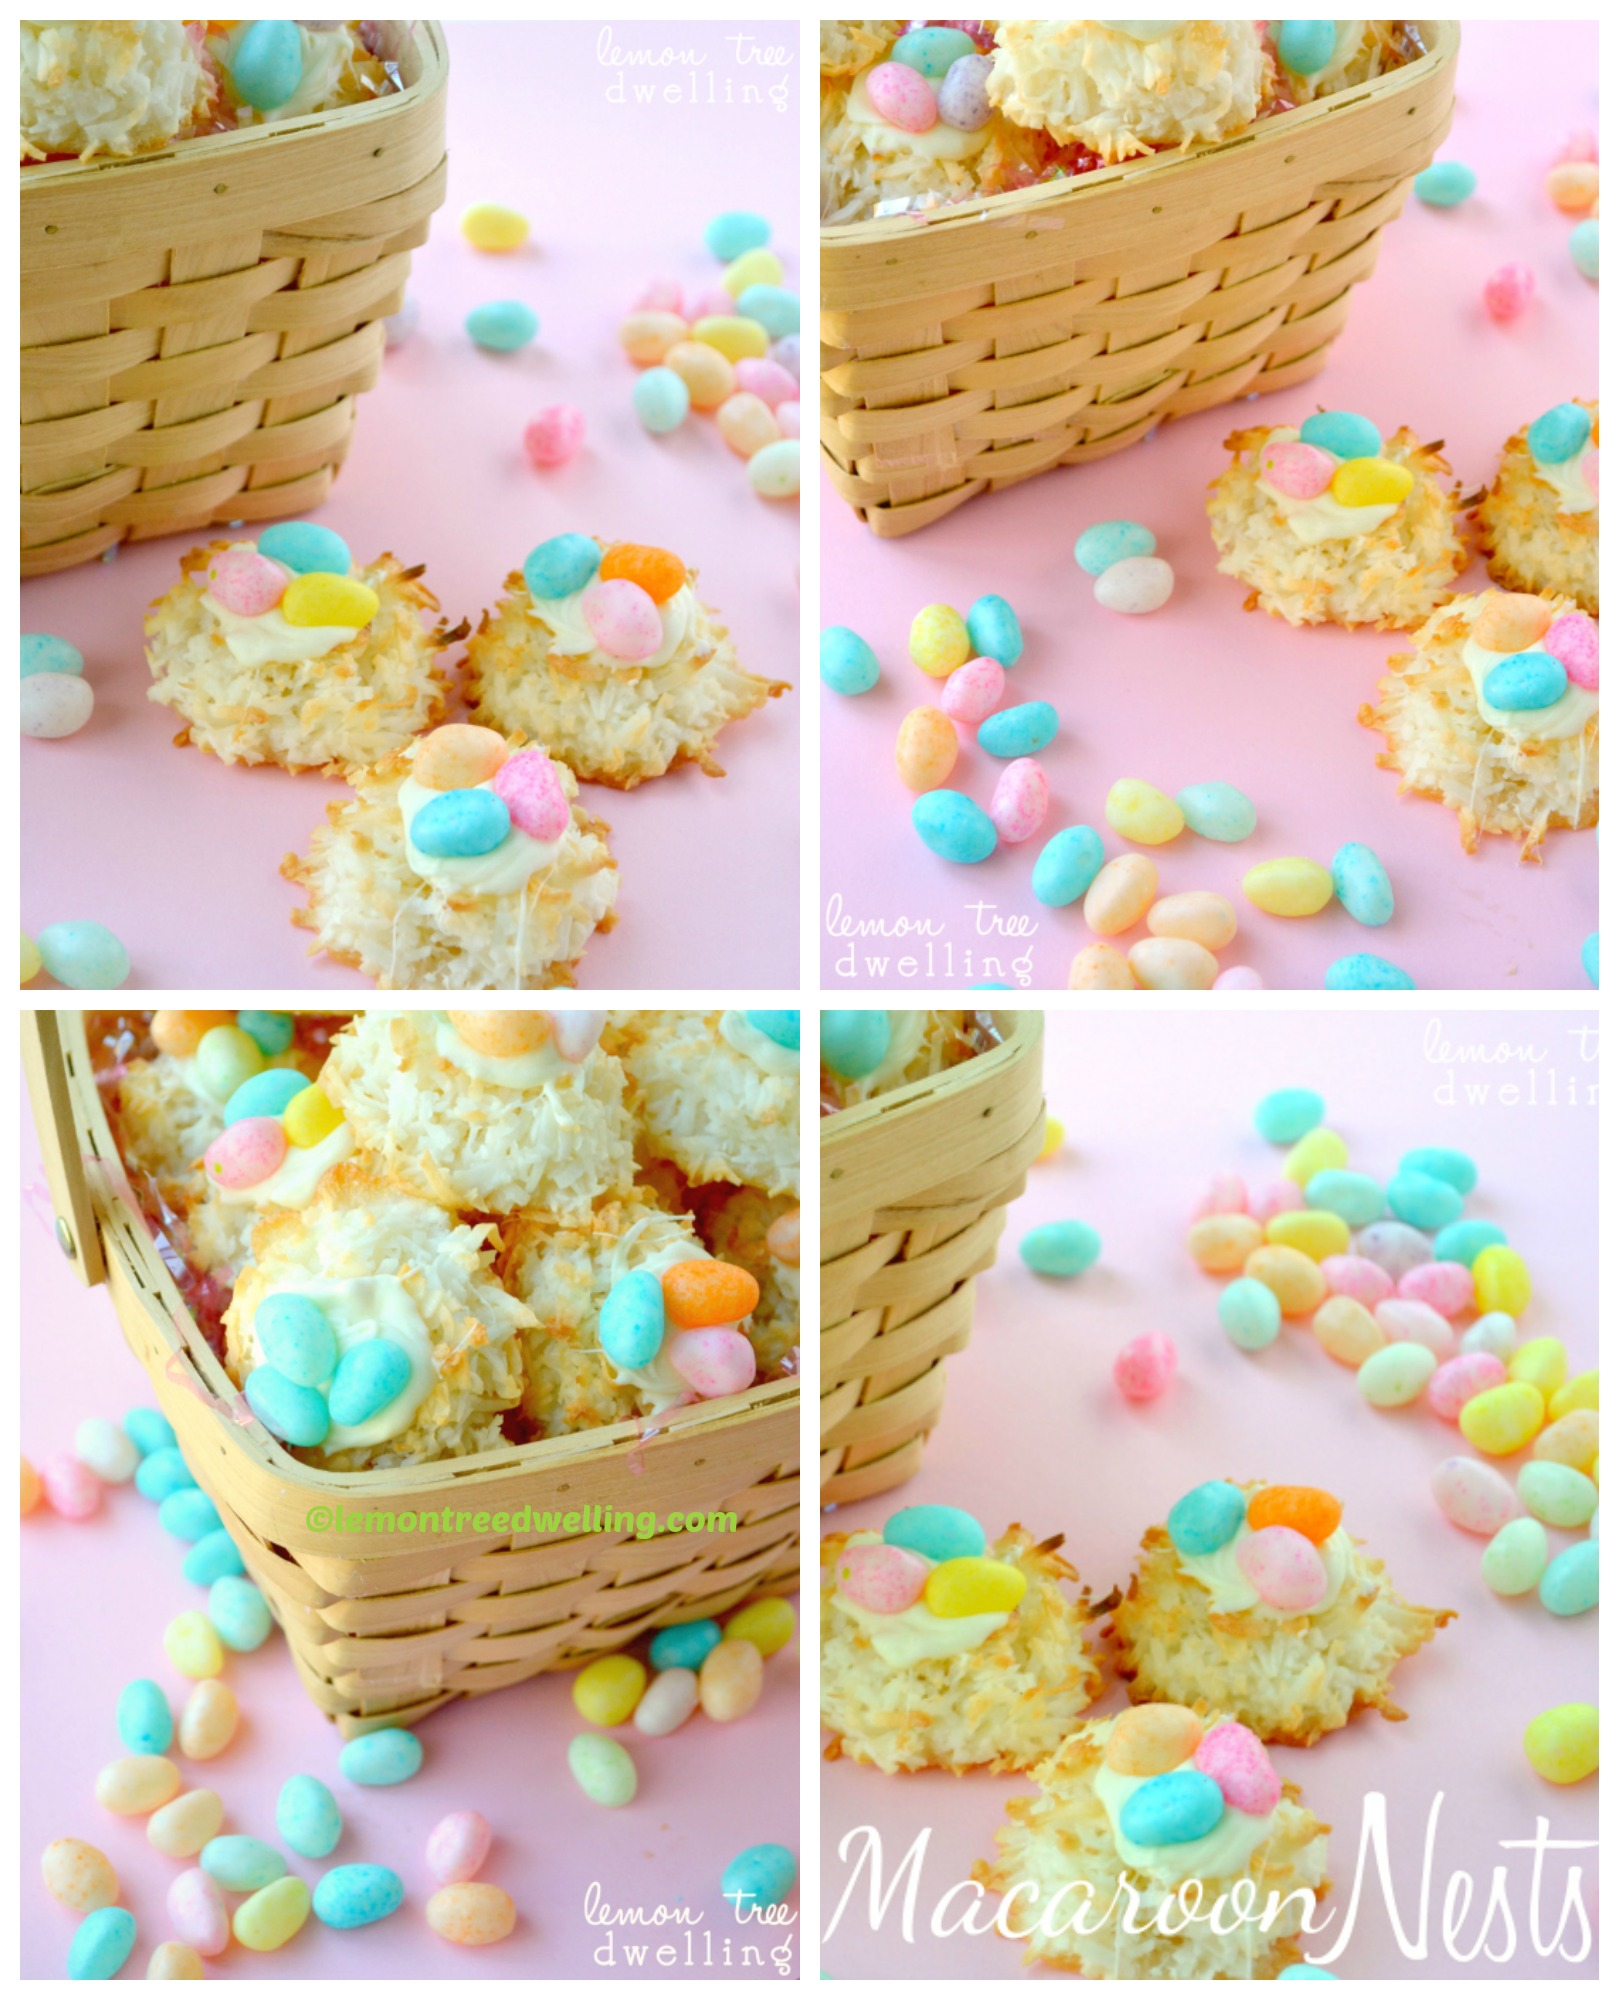 How to make Easter Macaroon Nests